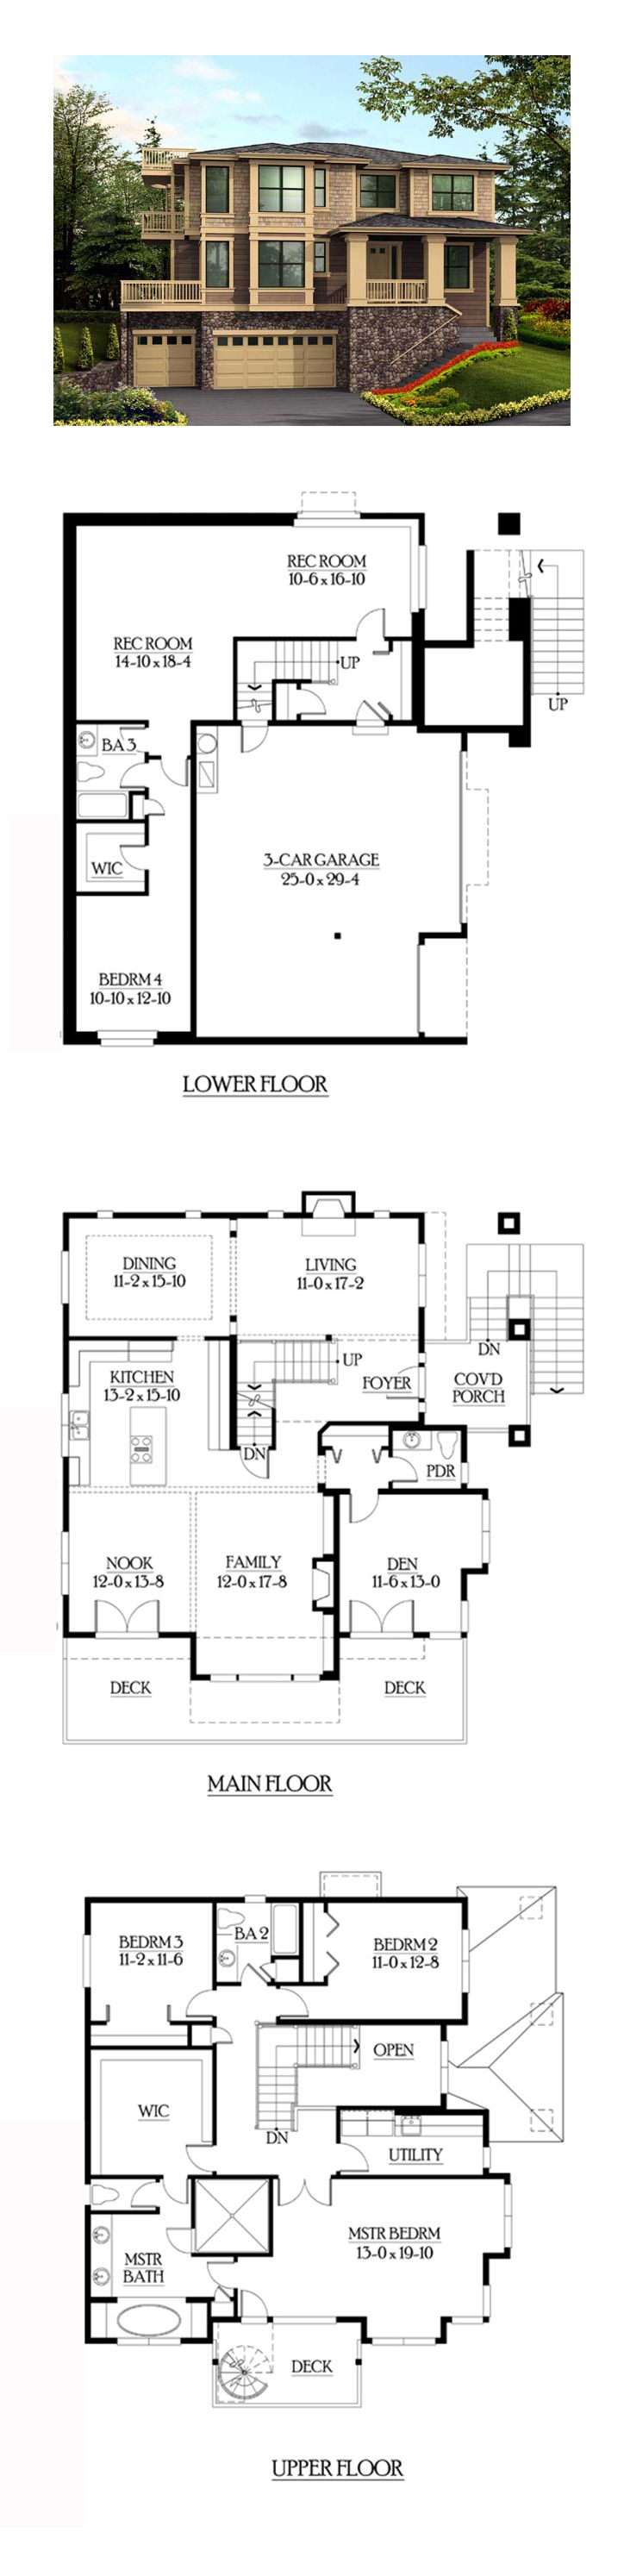 Finished Basement COOL House Plan ID: Chp-39324